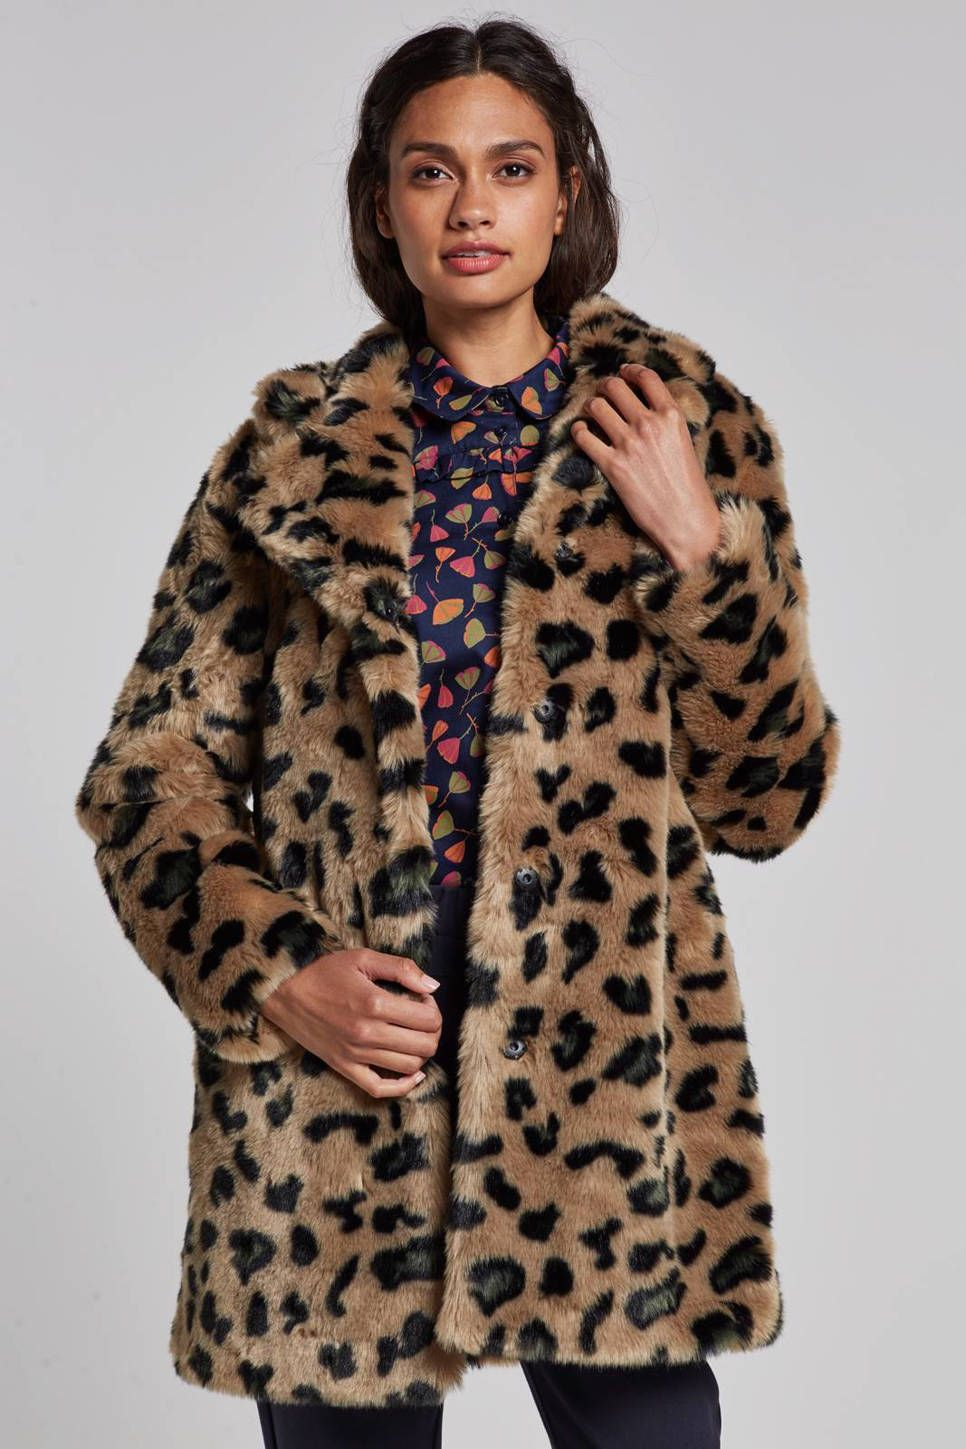 Winterjas 2019 Trend Dames.Chrissi Jas In Een Panterprint In 2019 Trend Dierenprint Coat